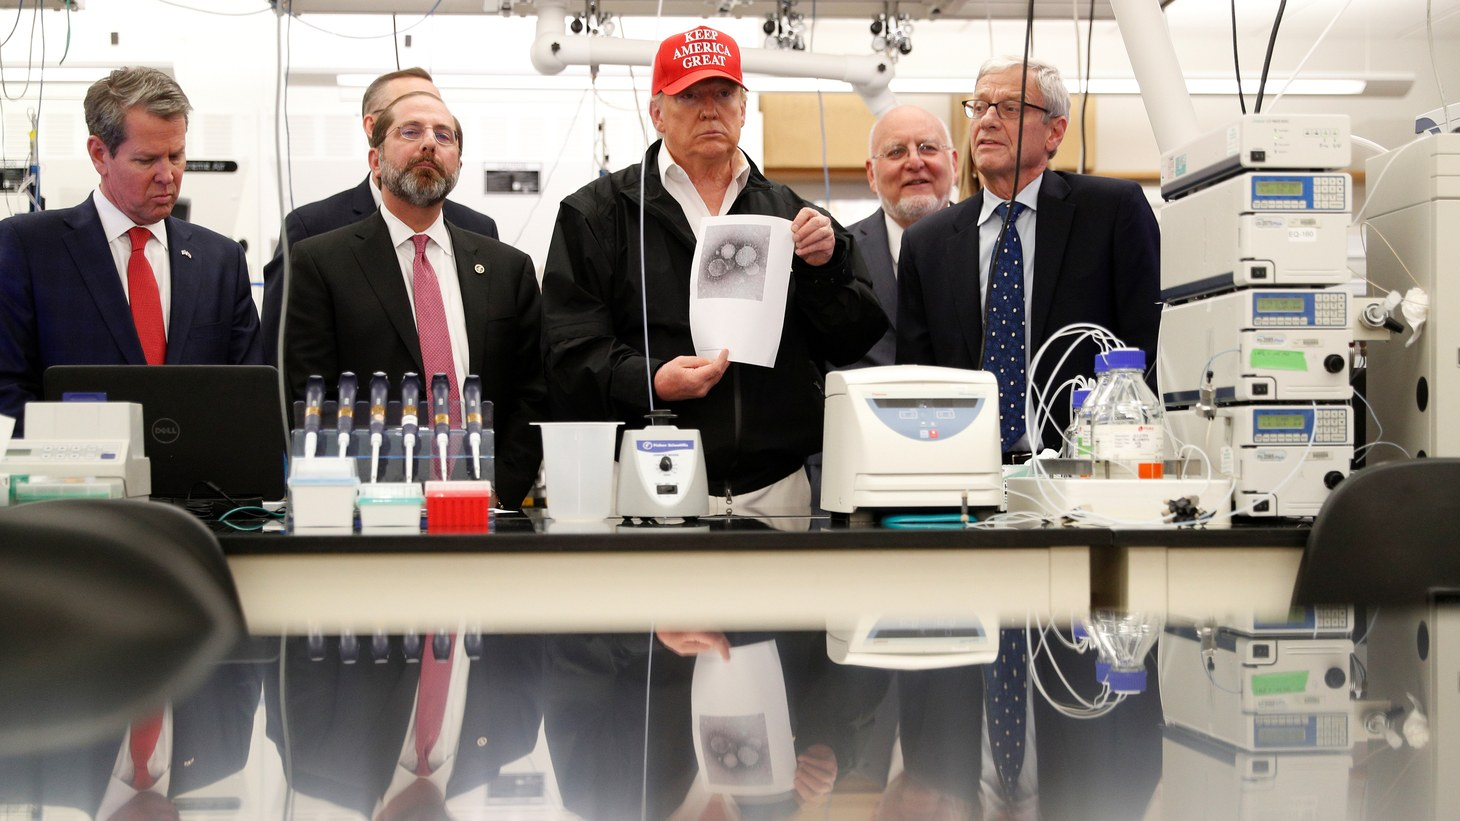 U.S. President Donald Trump displays a photo of the COVID-19 Coronavirus beside Georgia Governor Brian Kemp. HHS Secretary Alex Azar and C.D.C. Associate Director for Laboratory Science and Safety Steve Monroe at the during a tour of the Center for Disease Control in Atlanta, Georgia, U.S., March 6, 2020.